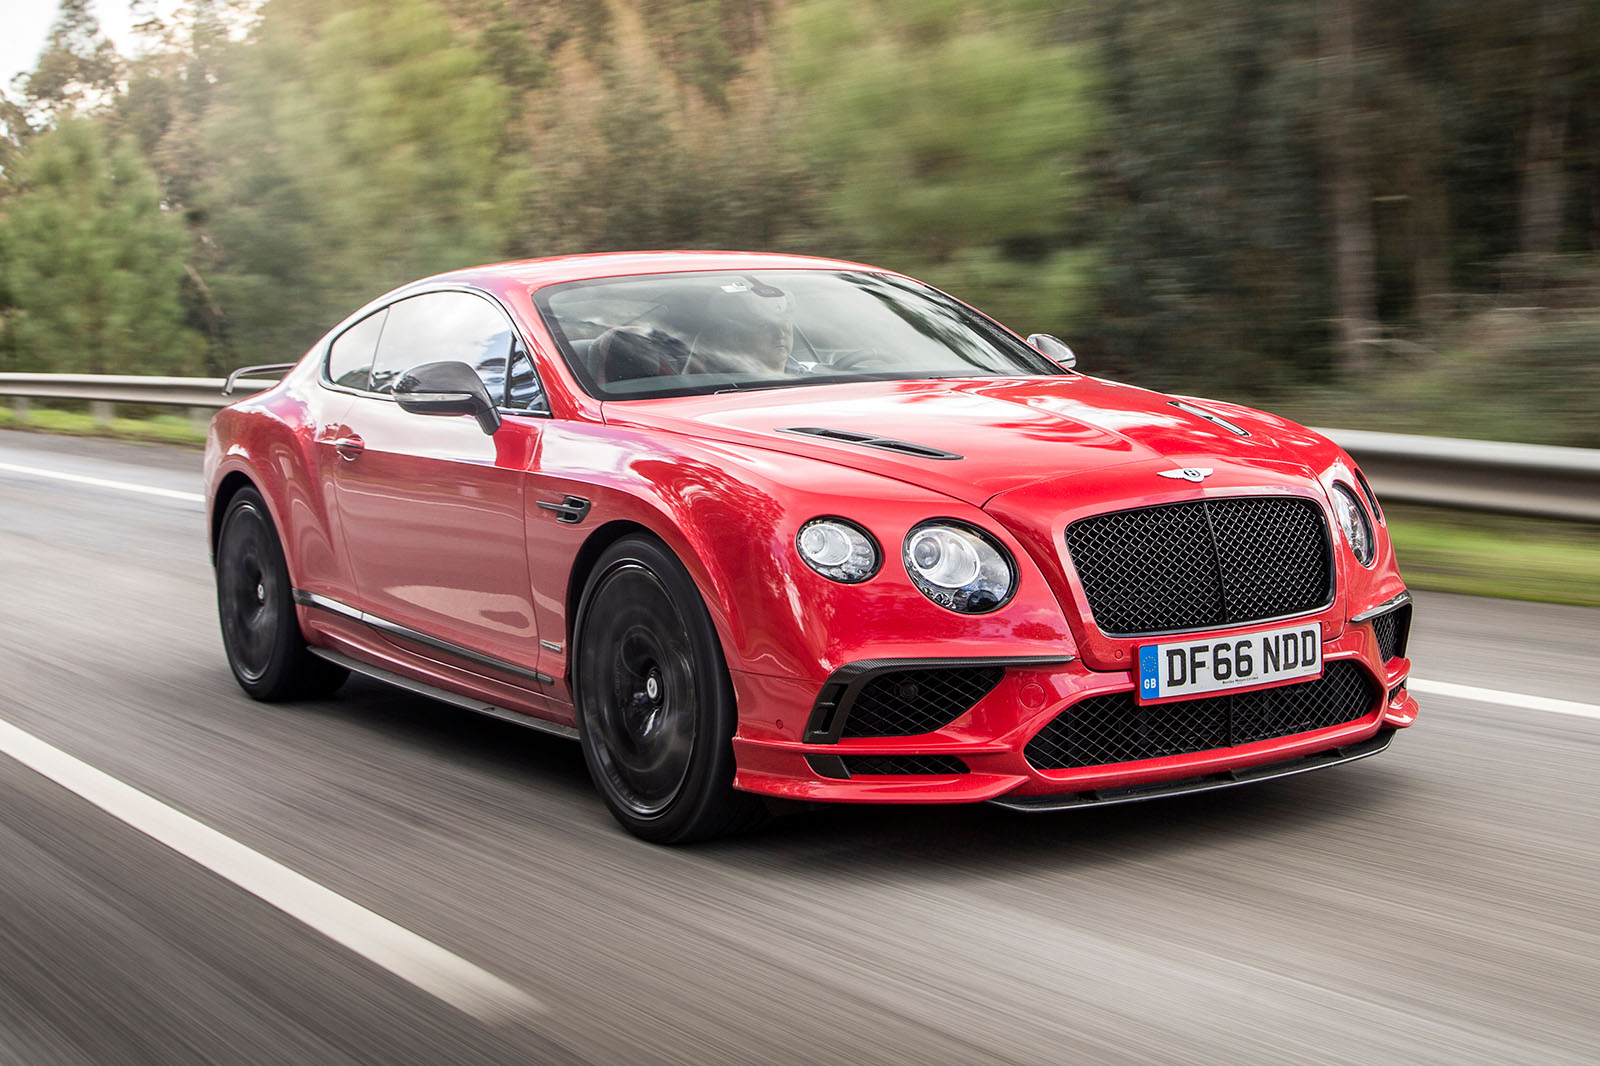 new cost in prices brawny a british news grand of trans cars the pictures revealed continental tourer gt release specs bentley